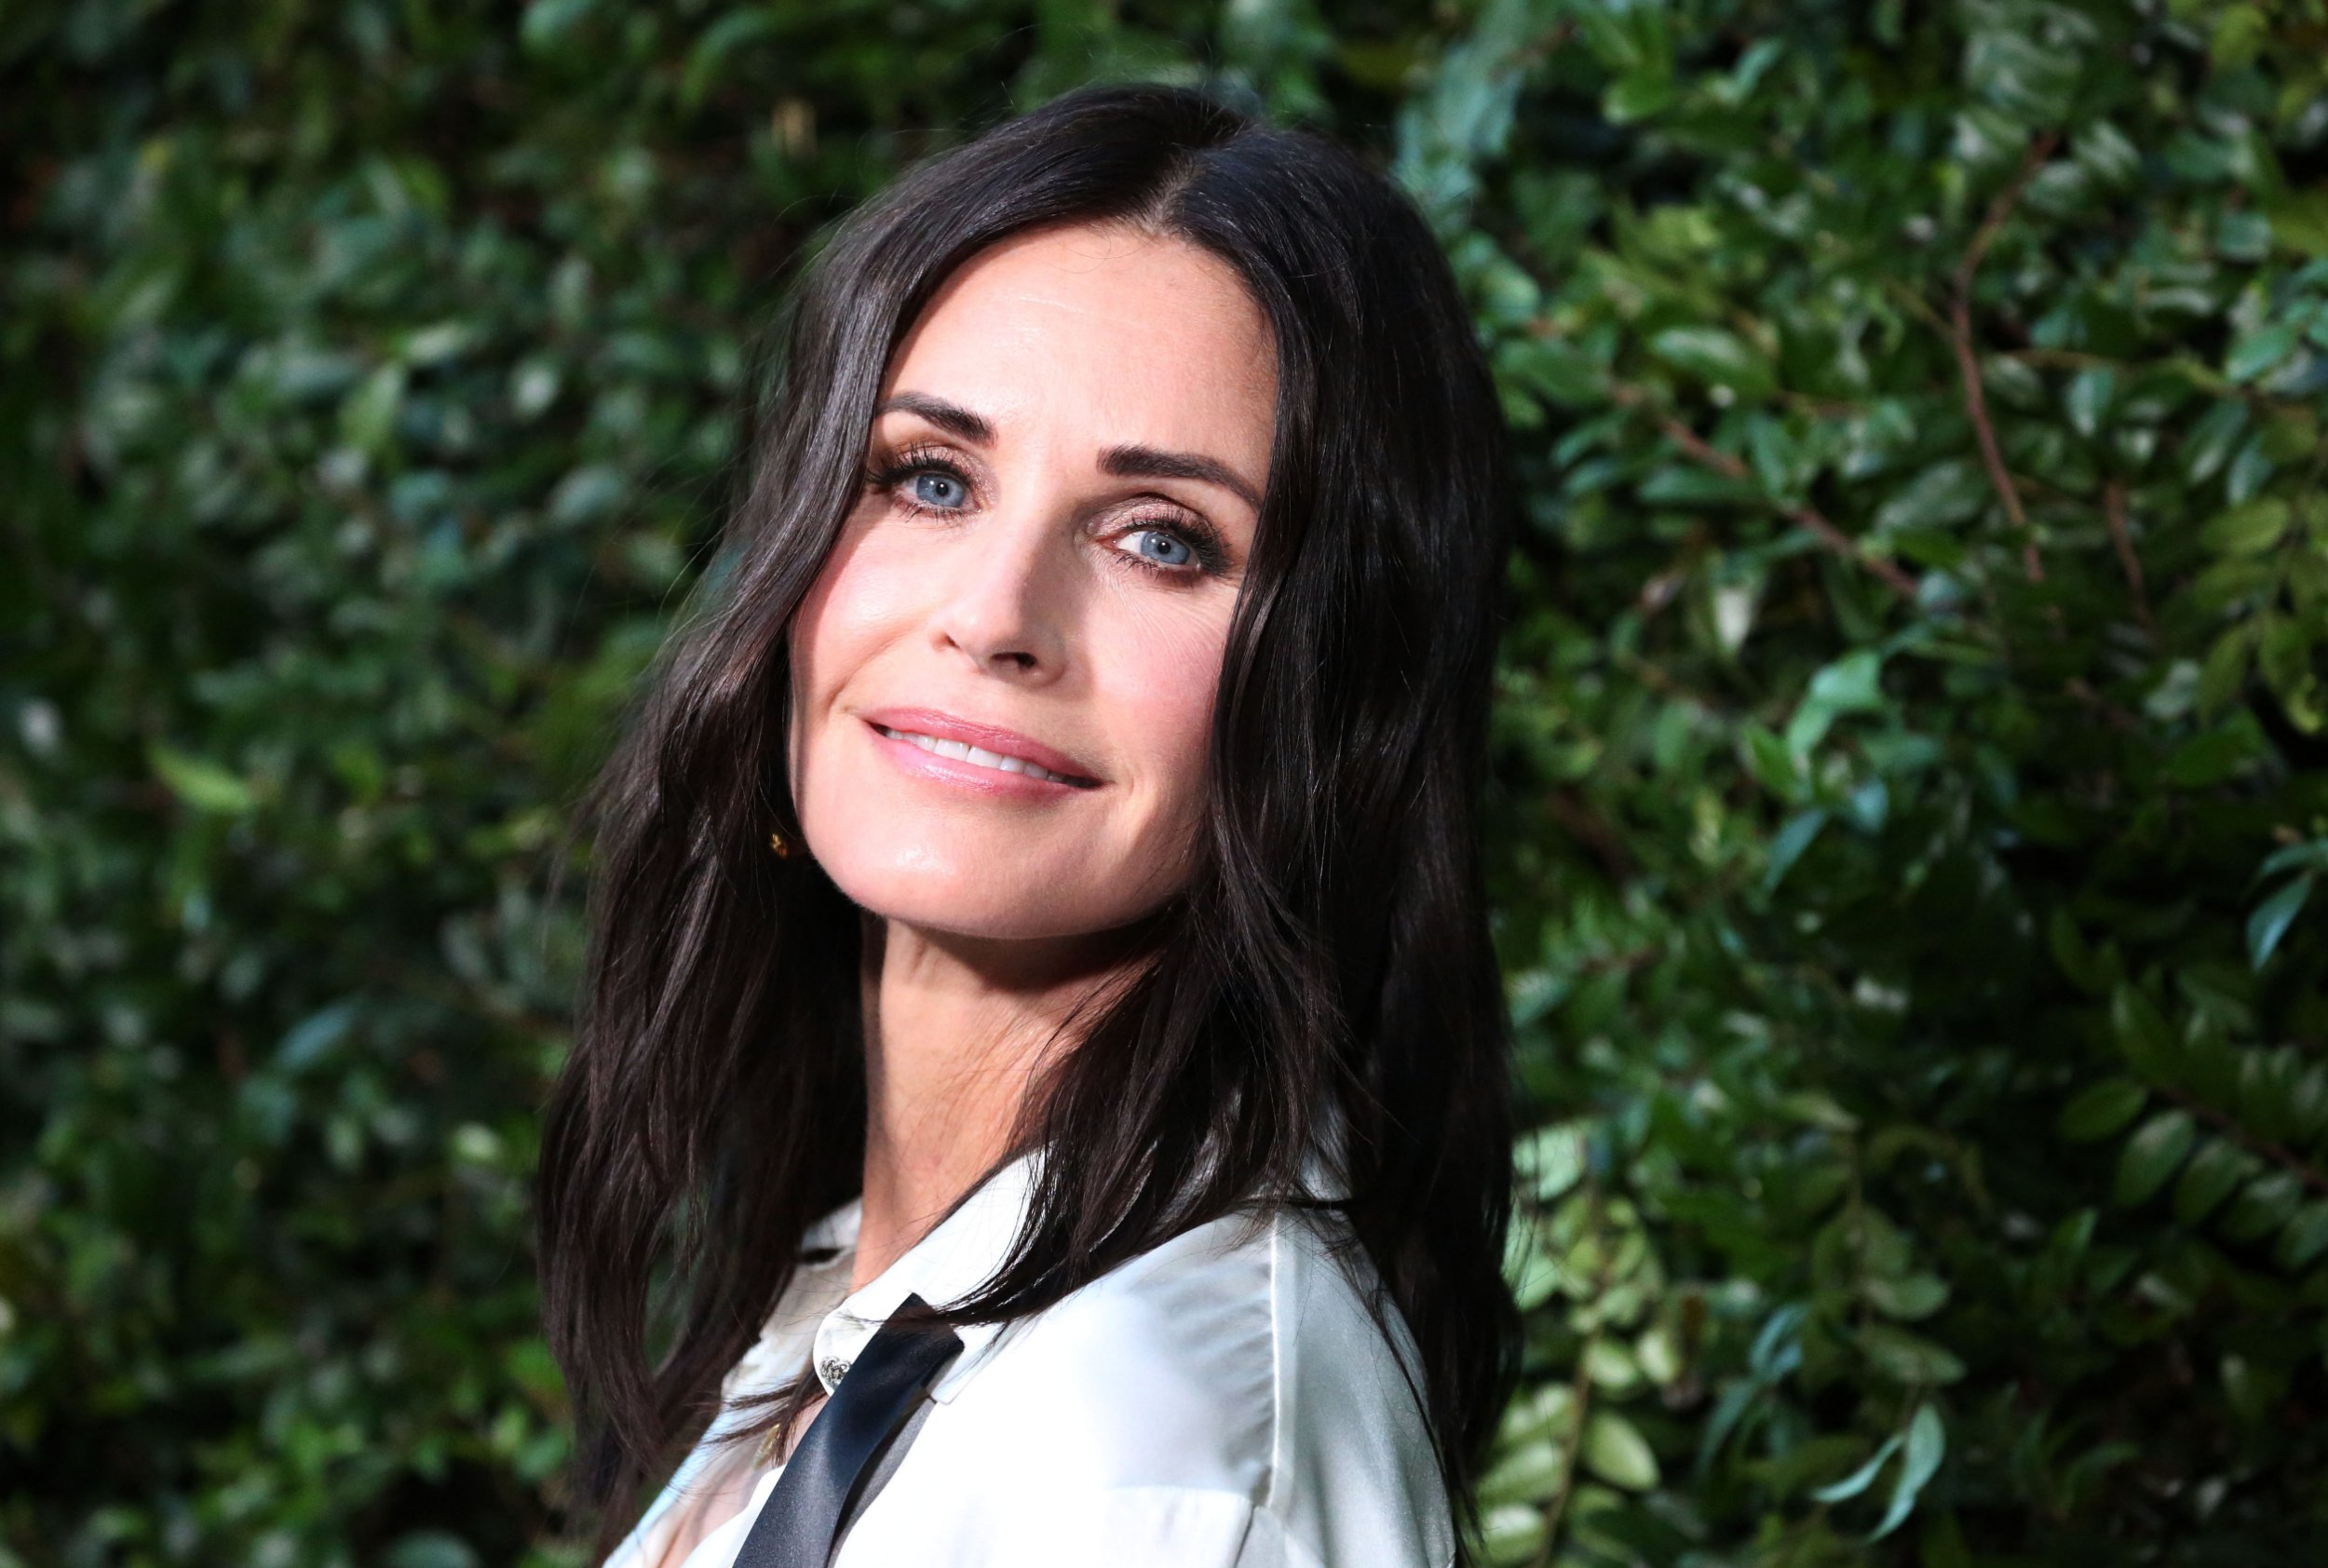 Courteney Cox waited until she was 21 to have sex for the first time